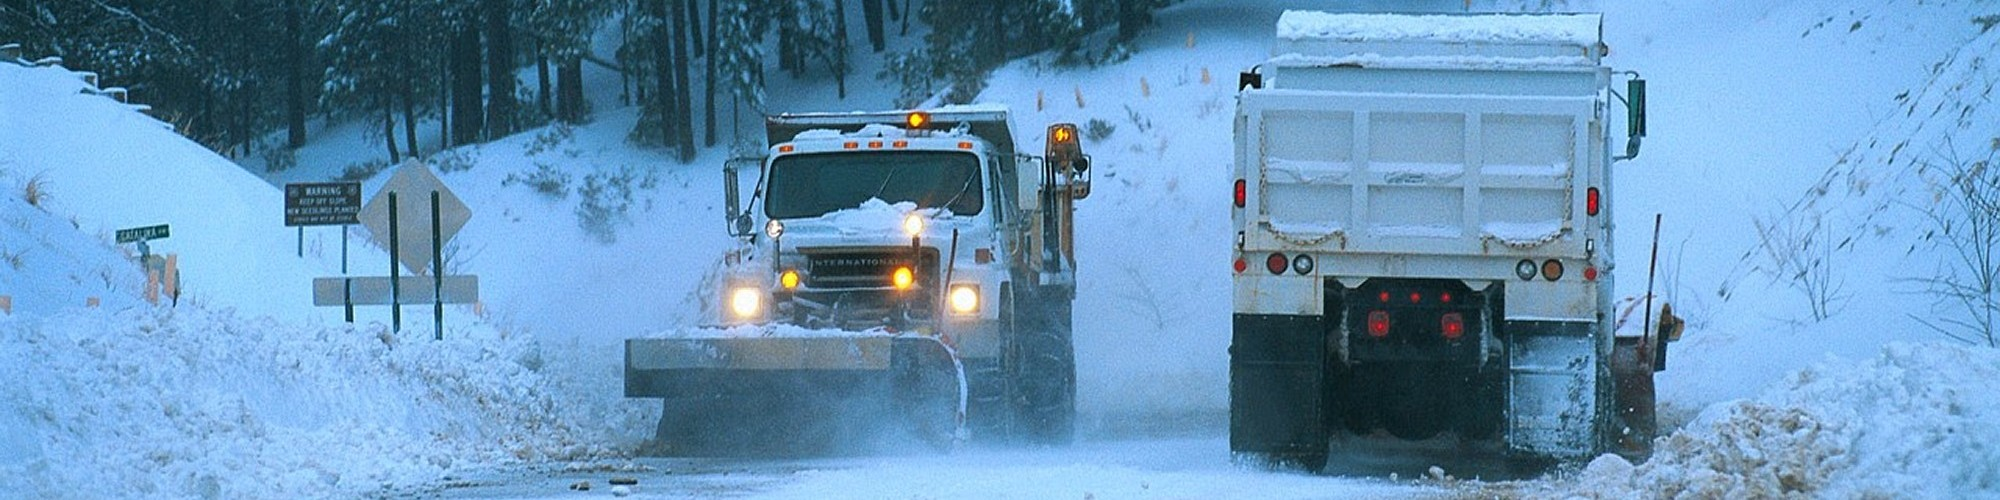 Reliable snow plowing services in Windsor, ON, and the surrounding area